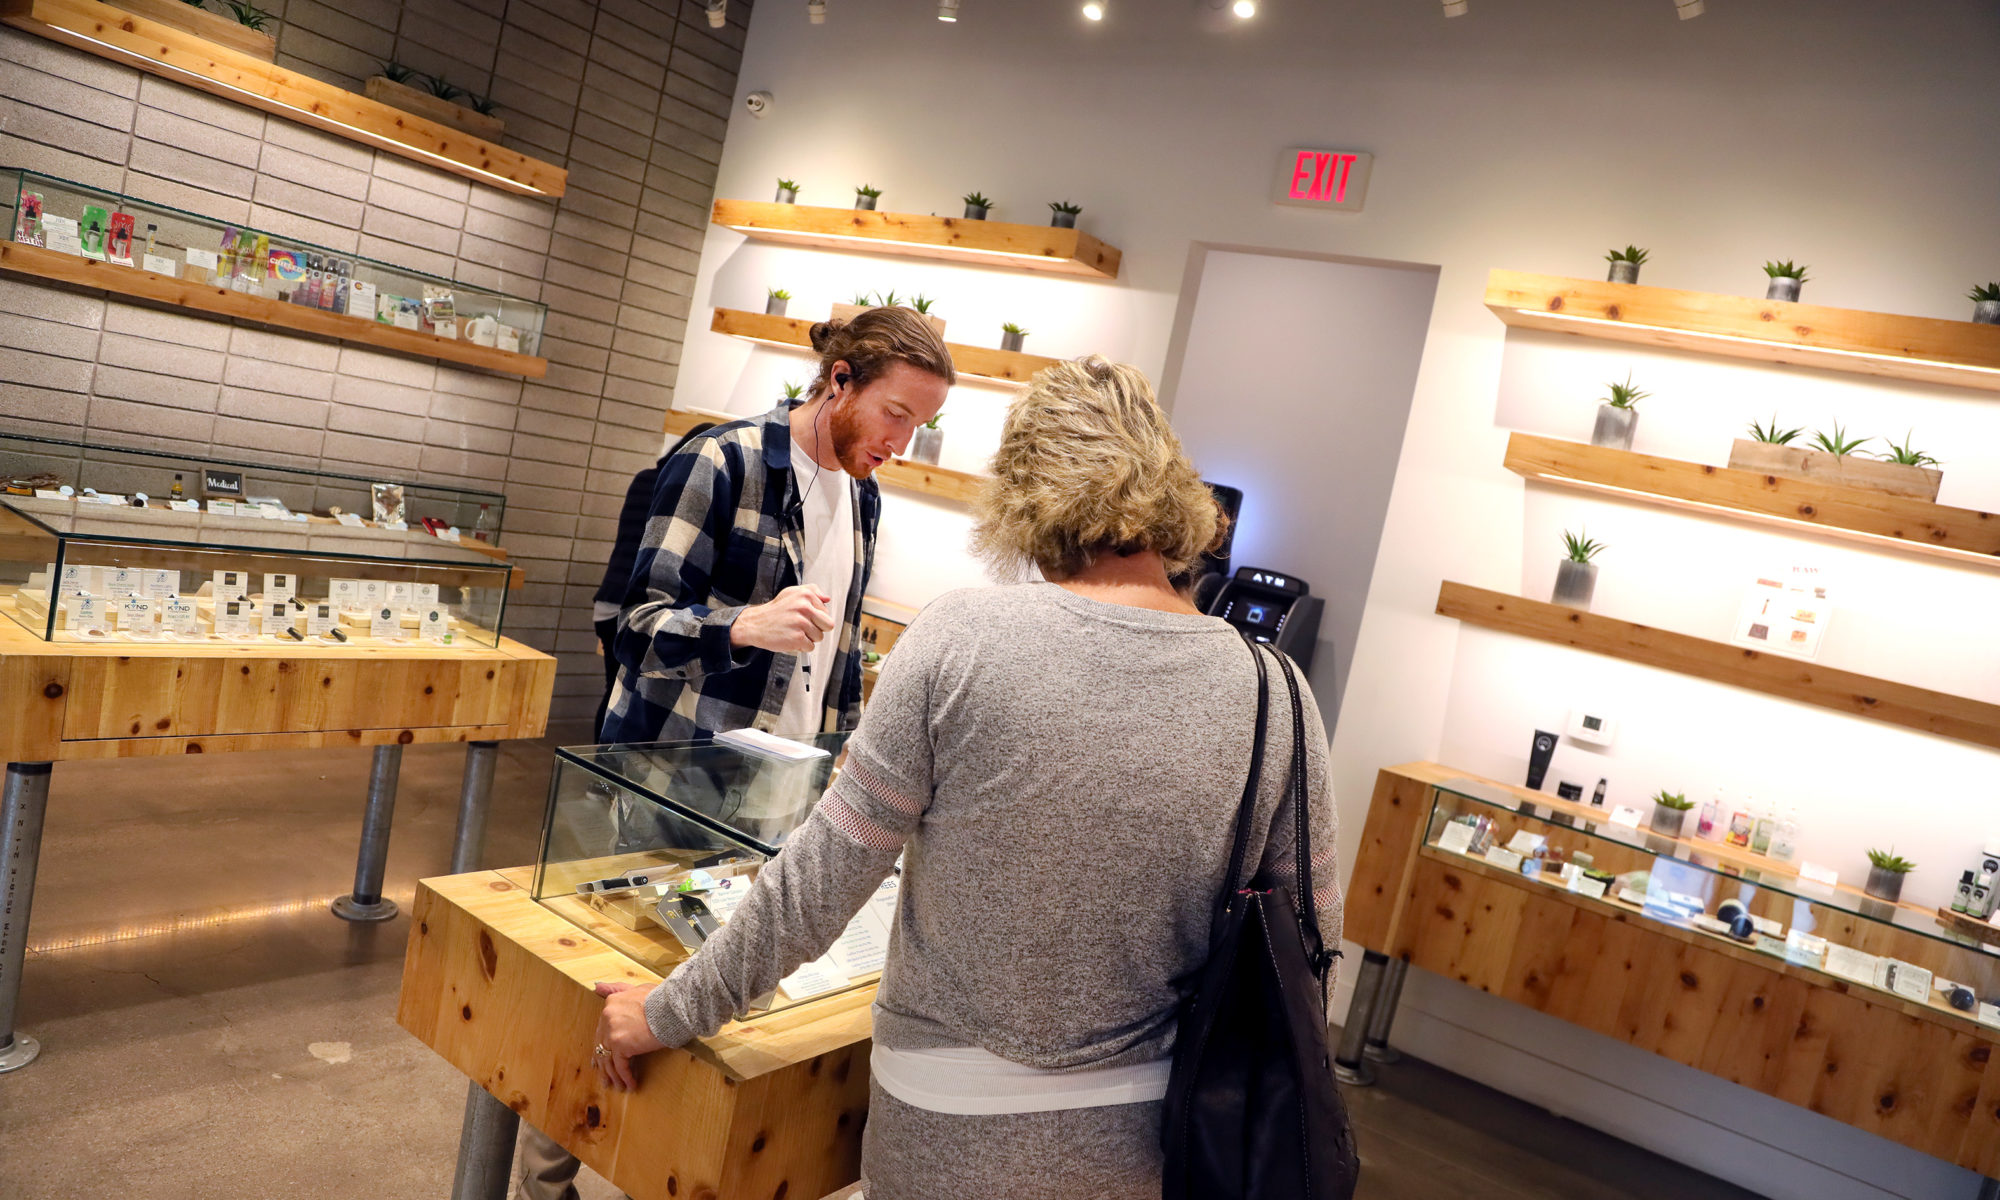 The Indy Explains: Can you bring pot across state lines?